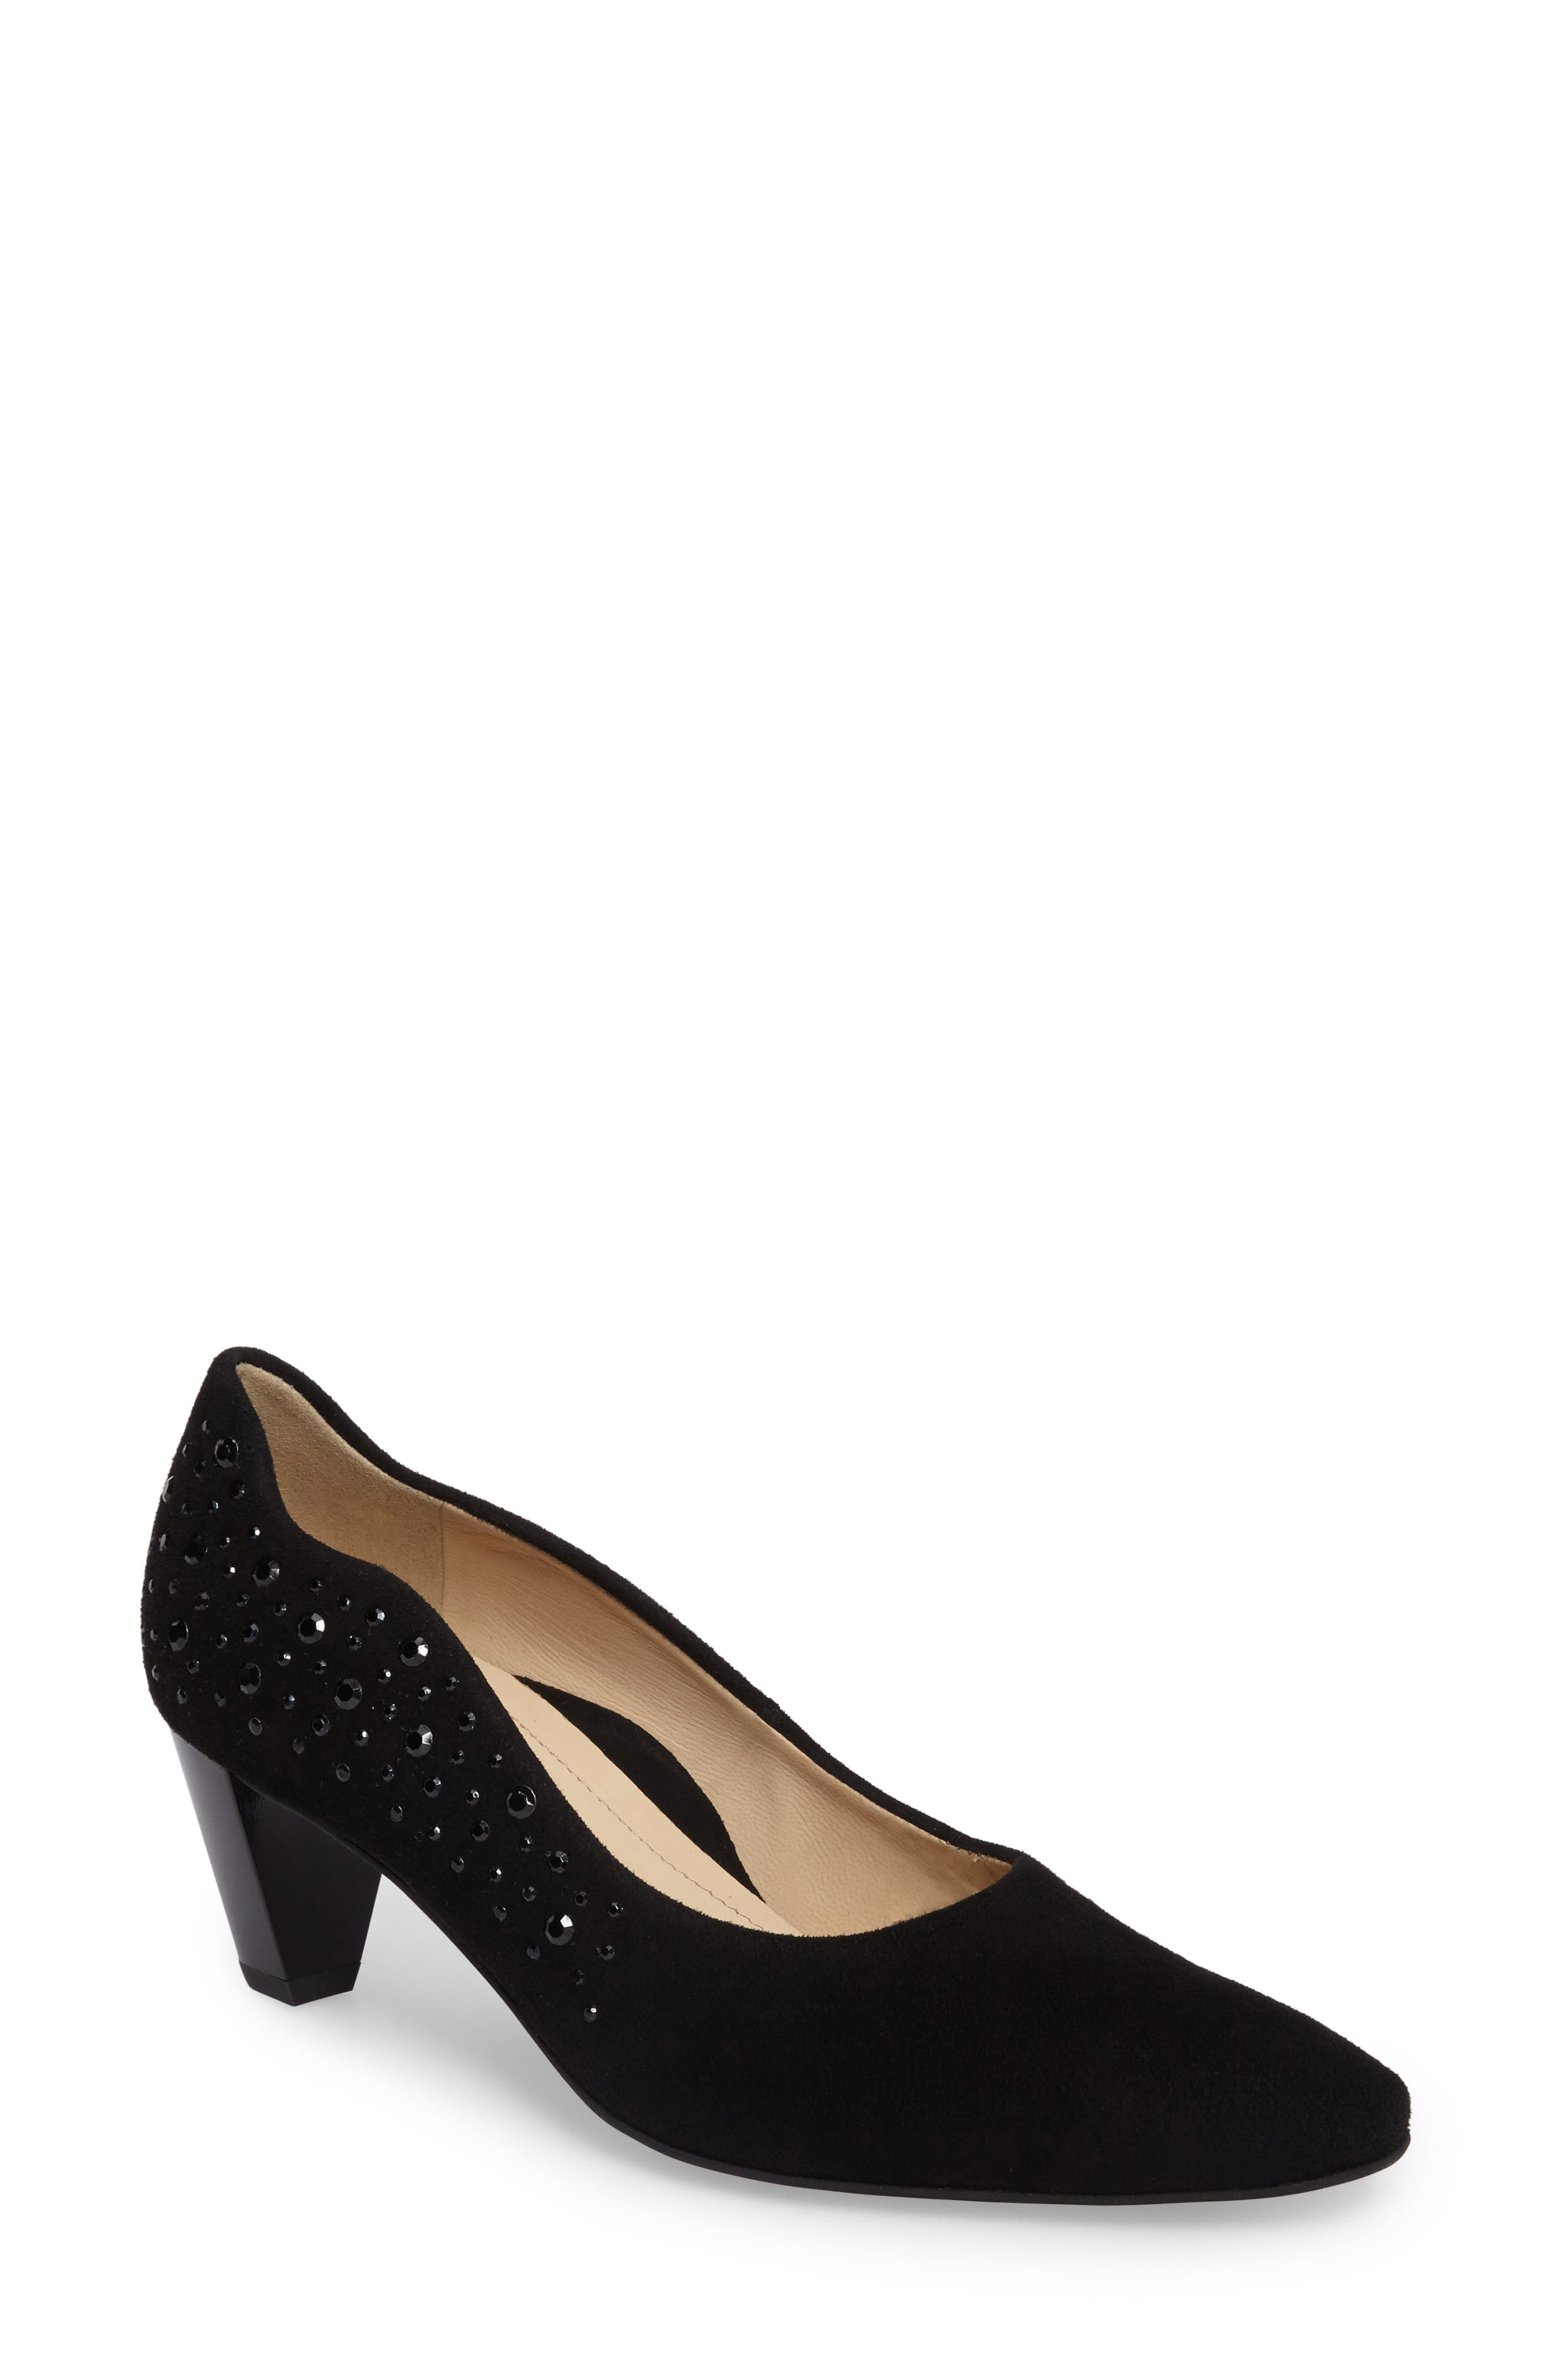 Main Image - ara Pippa Crystal Embellished Pump (Women)